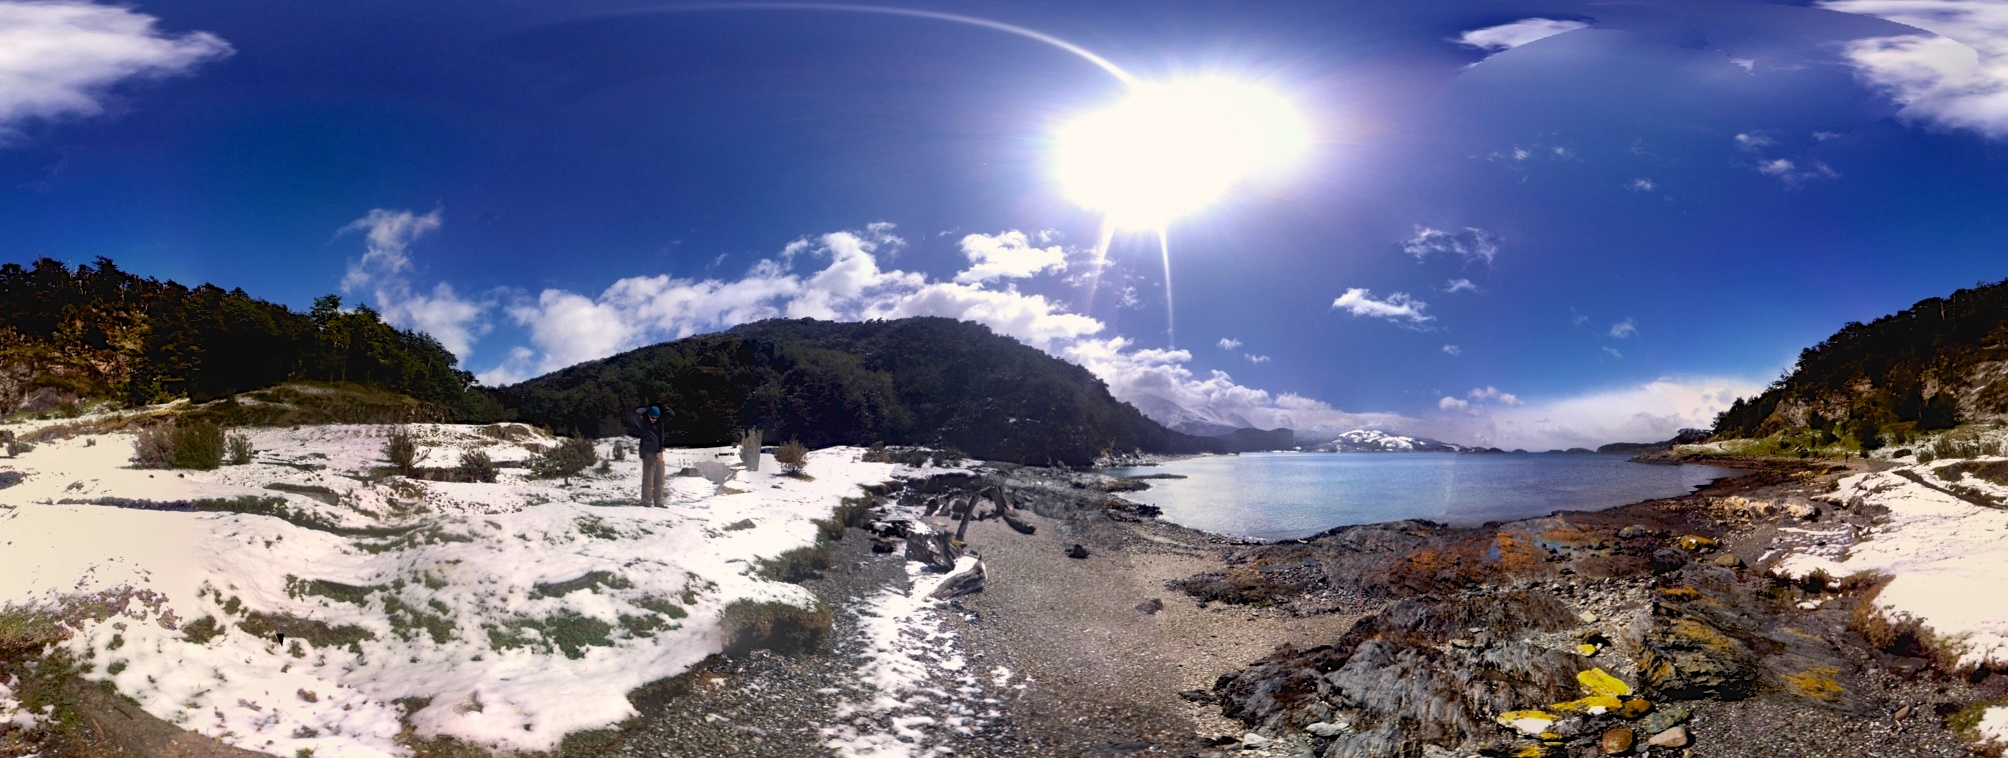 Phone panorama: not the best quality but it gives a good idea of the landscape